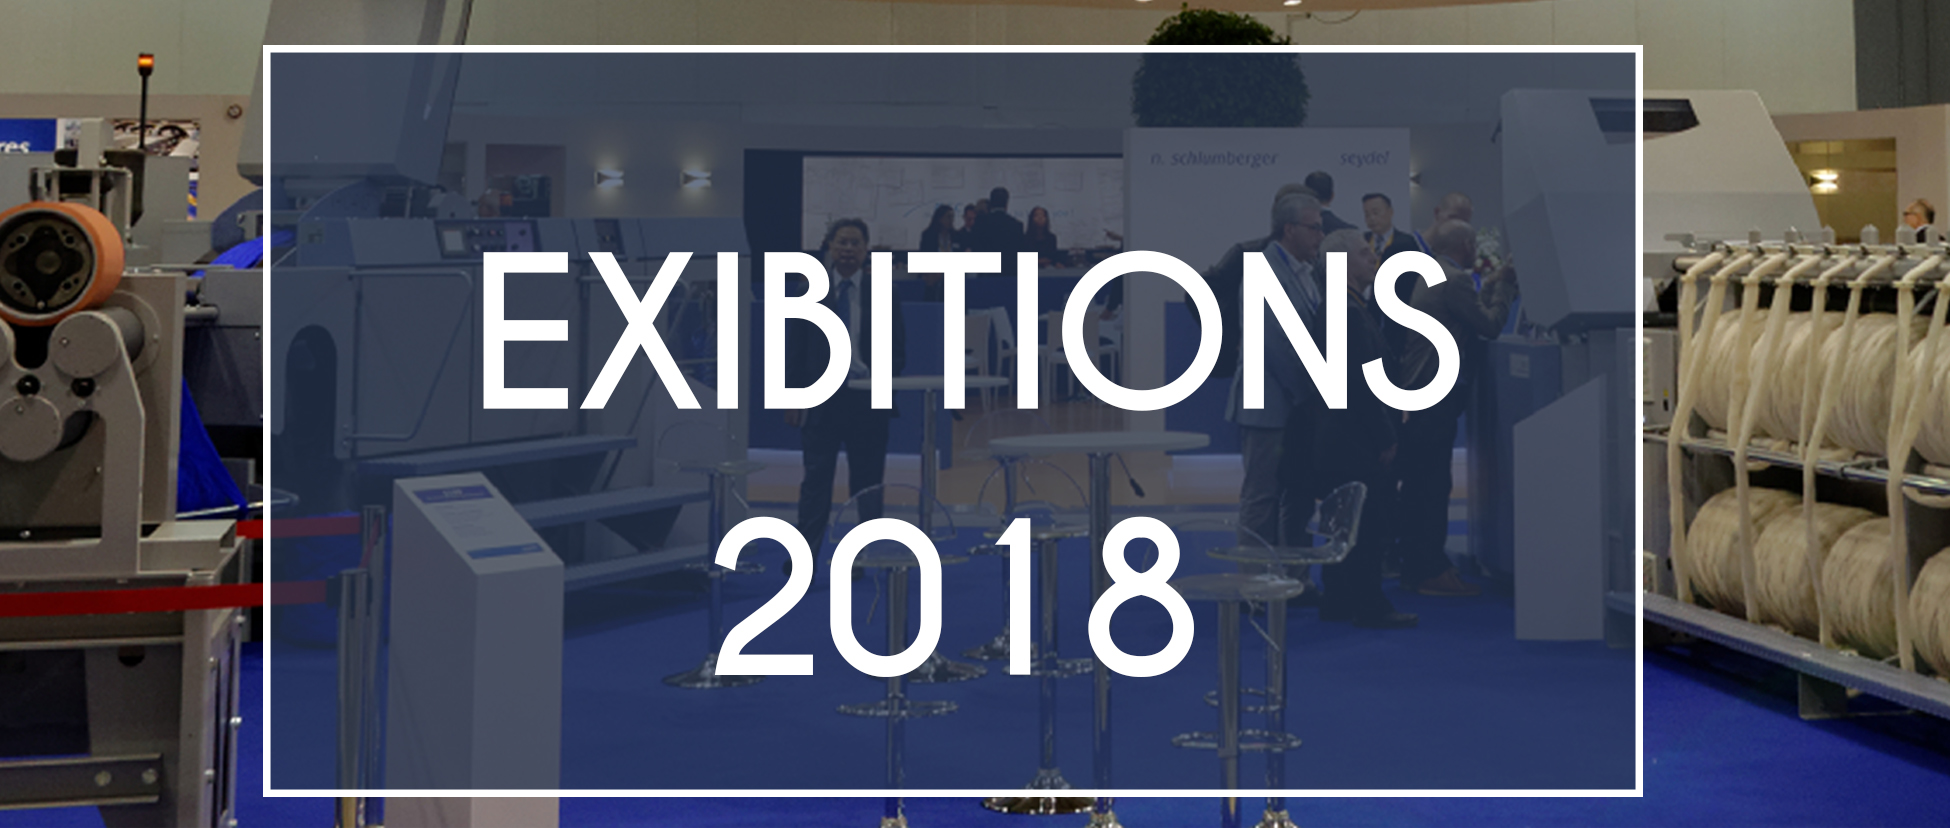 N.Schlumberger Exhibitions 2018